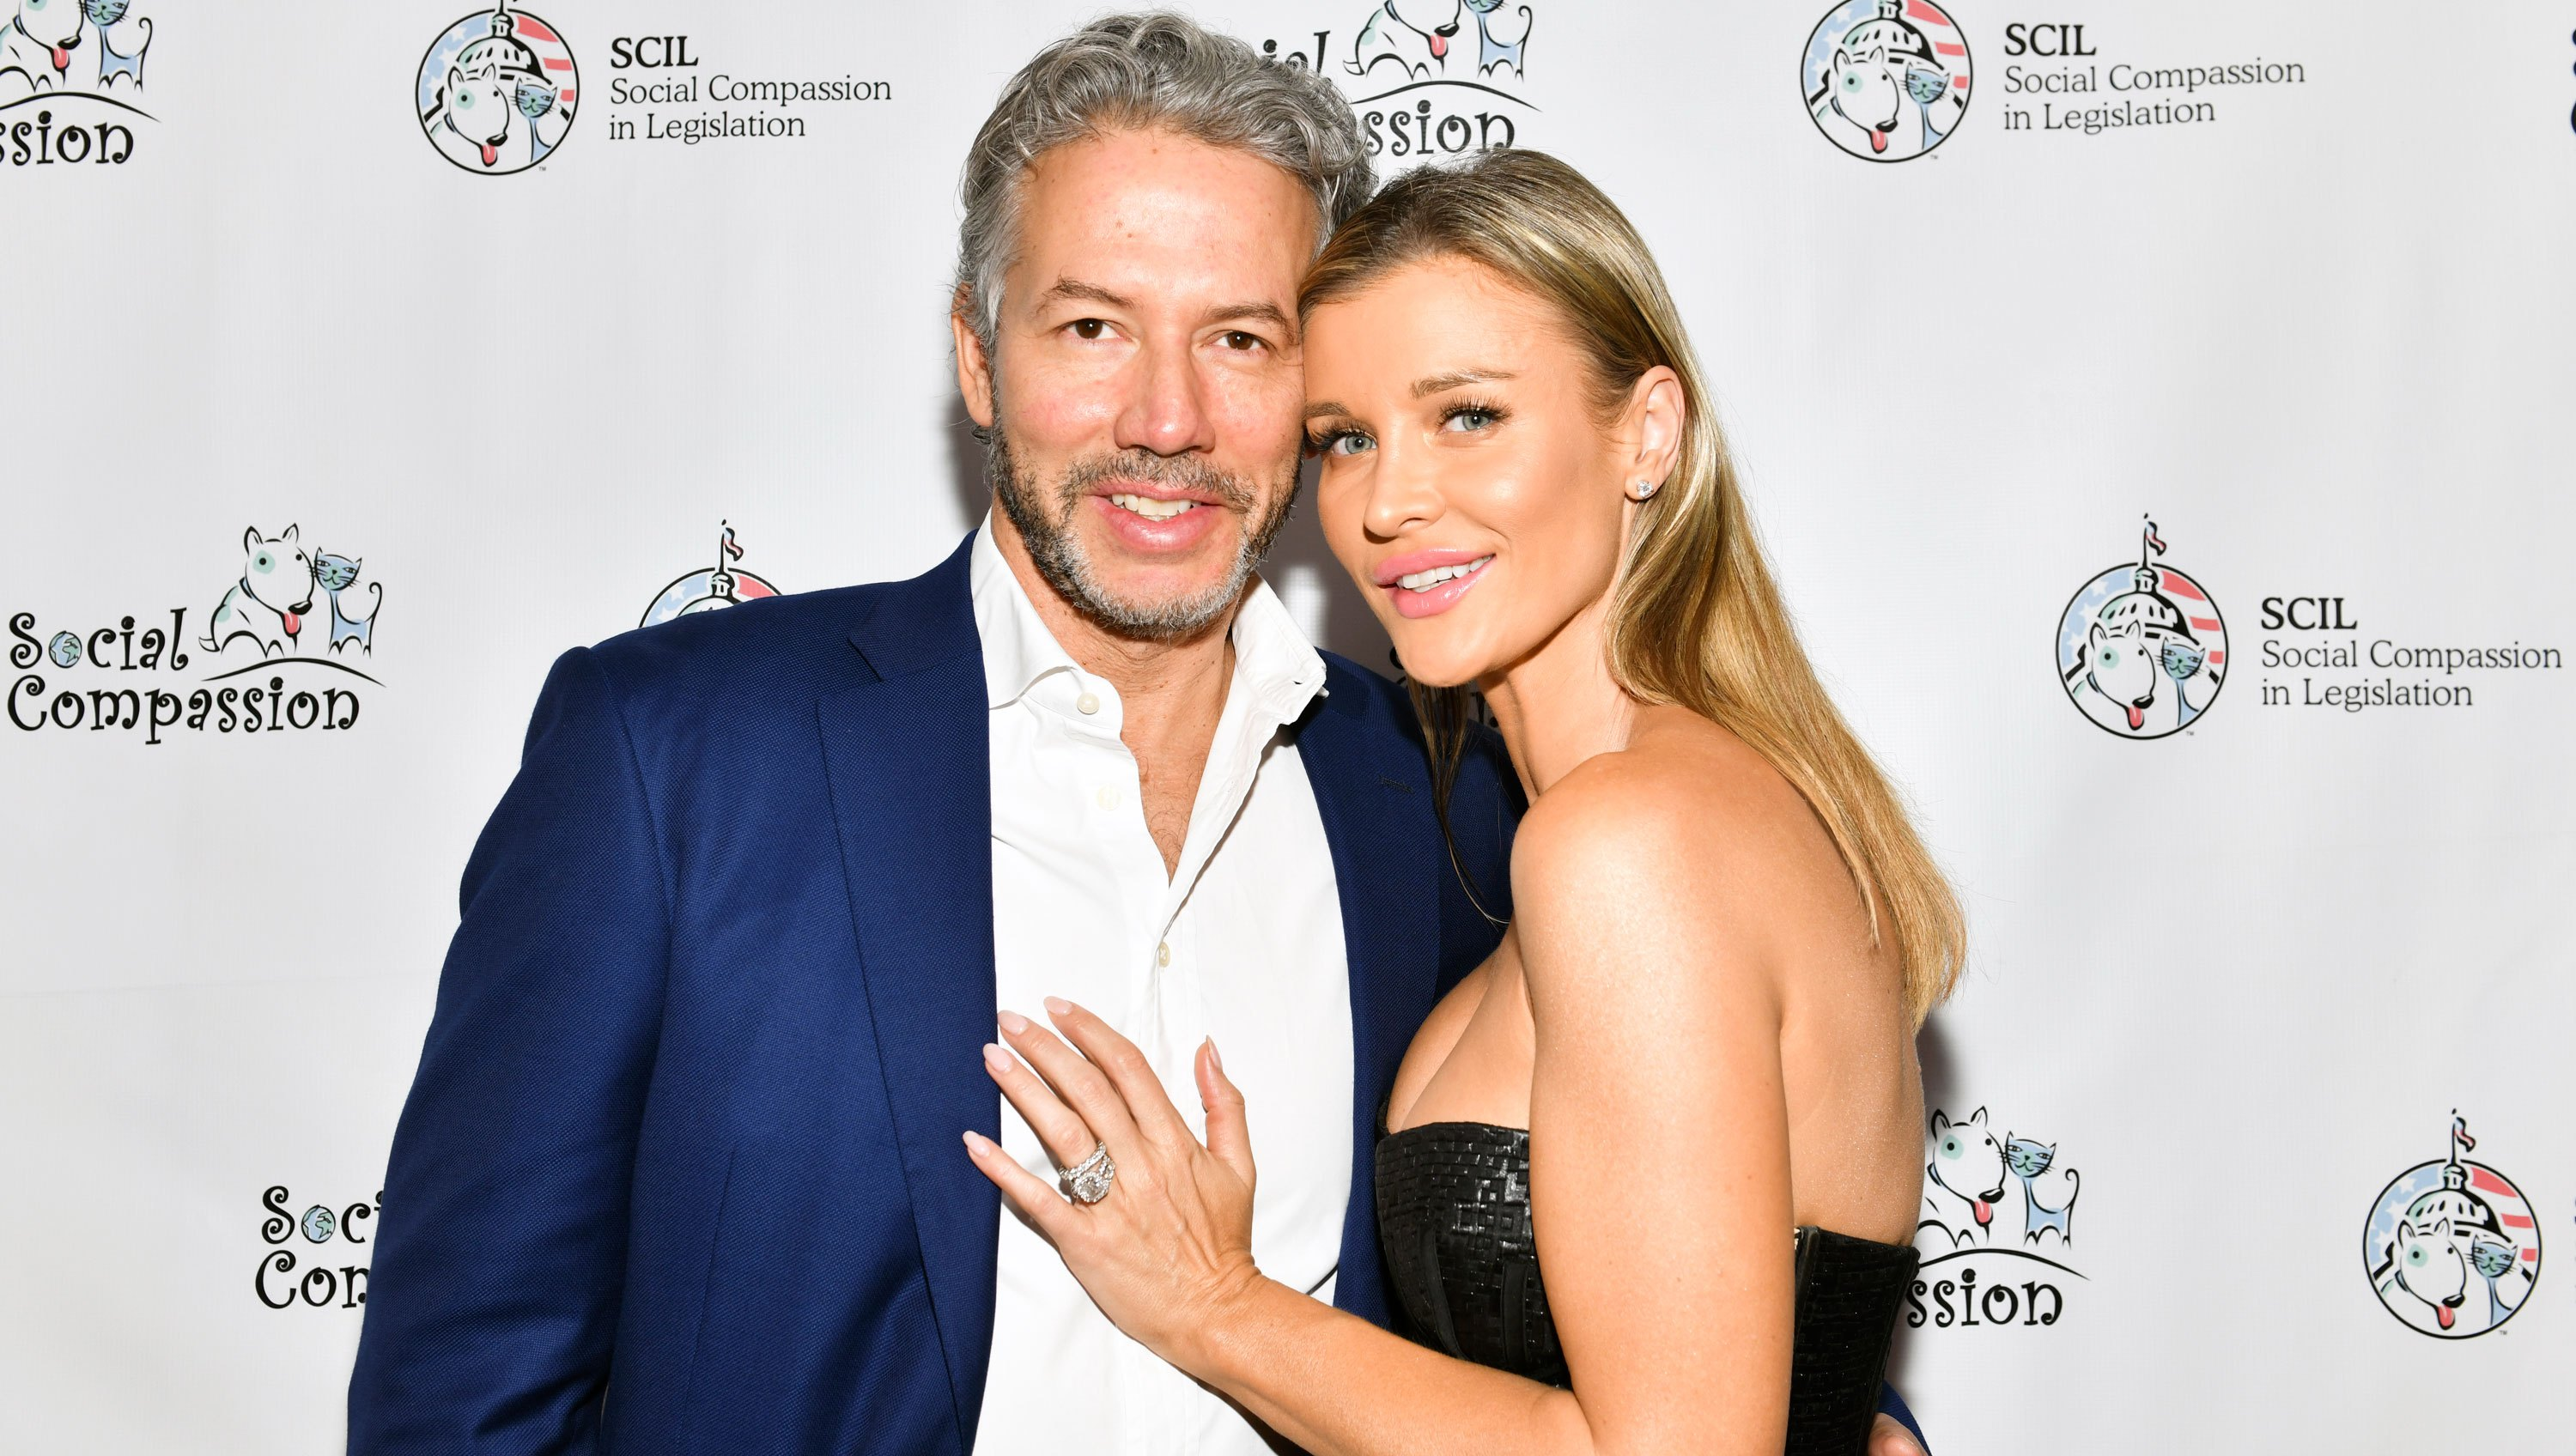 'Real Housewives of Miami' Alum Joanna Krupa Is Pregnant, Expecting First Child With Husband Douglas Nunes